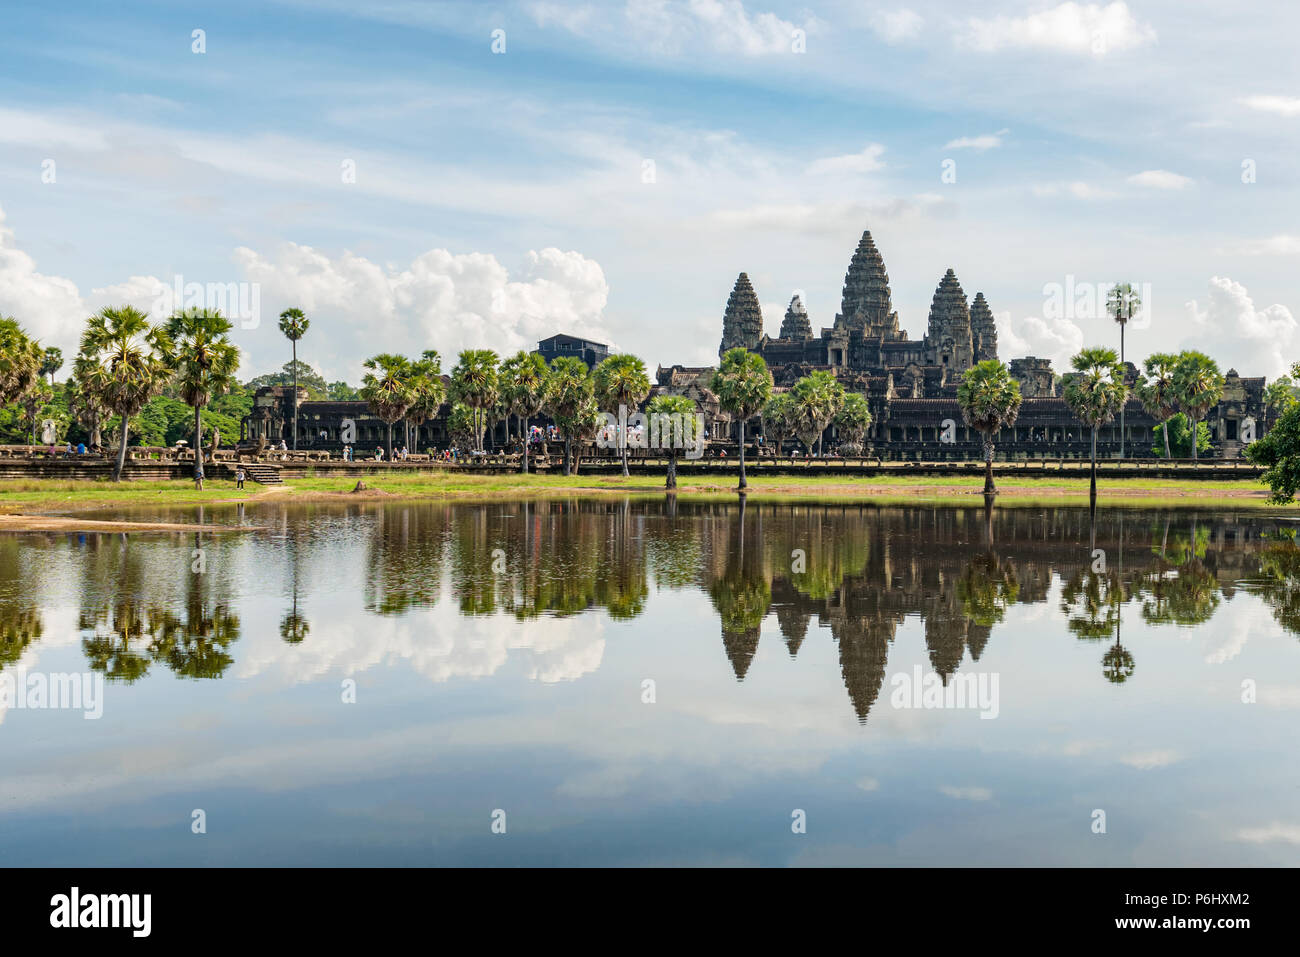 Angkor Wat, Cambodia - November 17, 2017: Tourists are visiting Angkor Wat main temple with reflection in the water. It is the largest religious compl - Stock Image